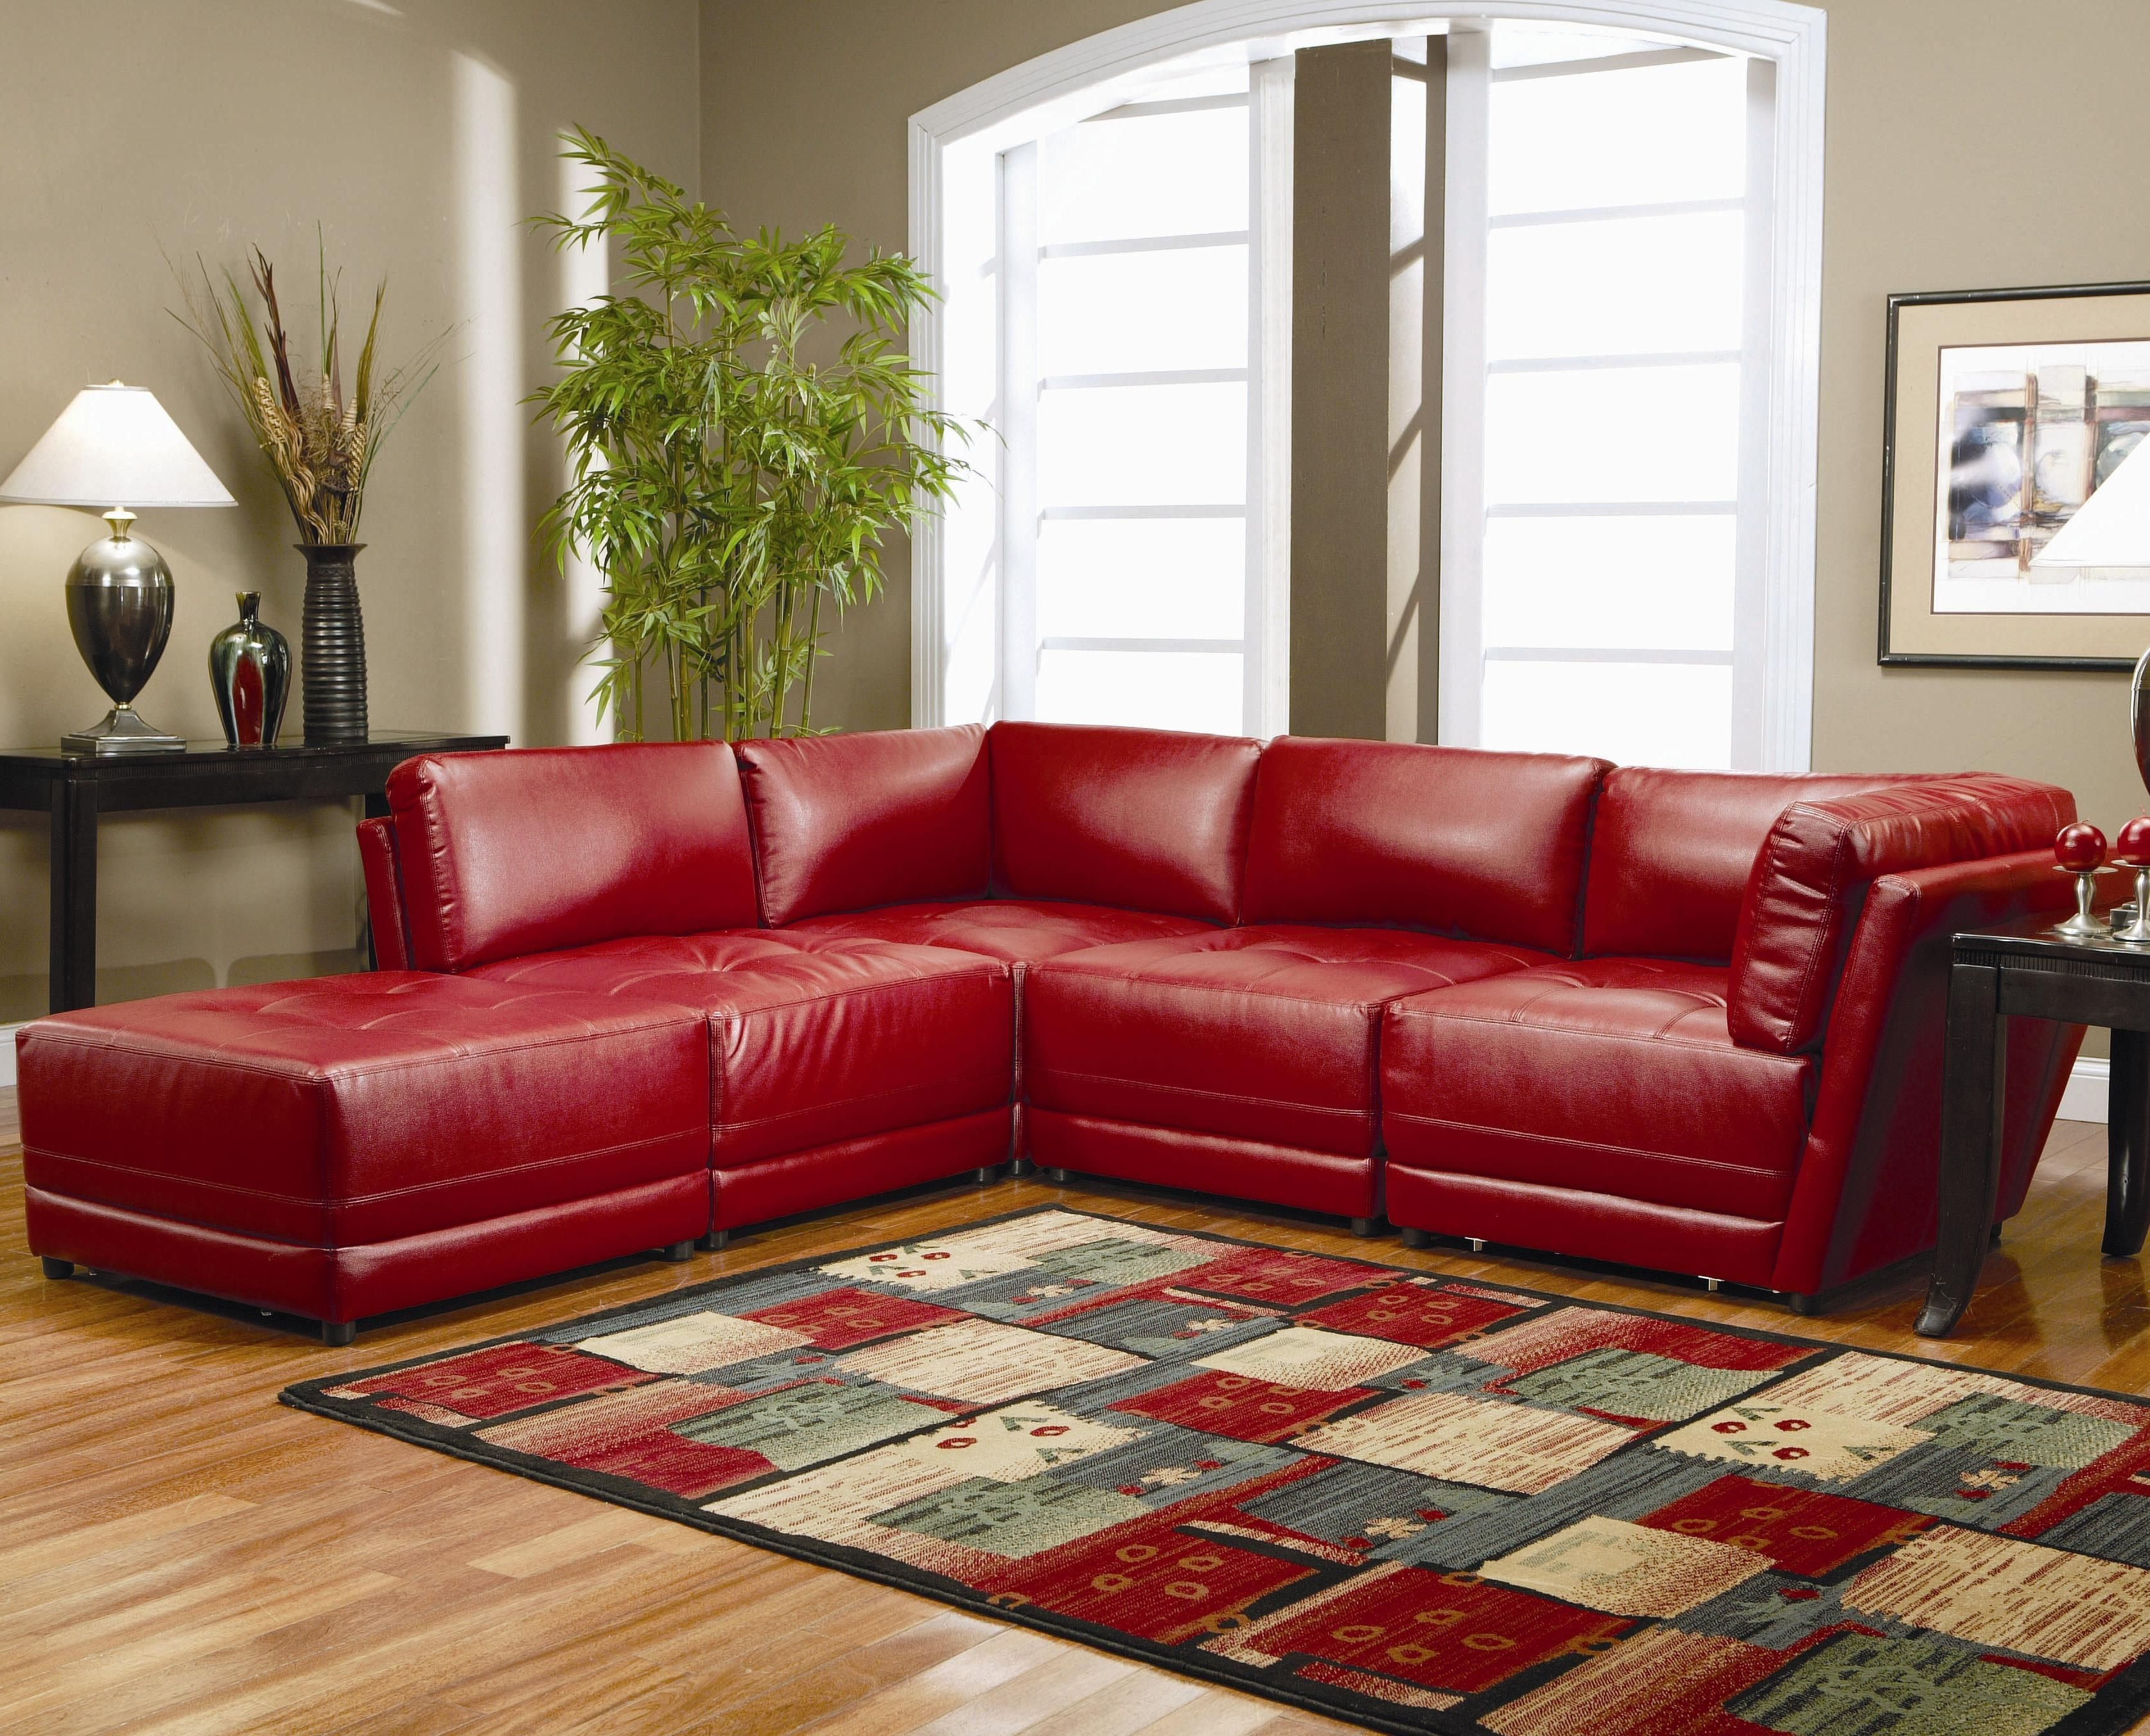 Warm Red Leather Sectional L Shaped Sofa Design Ideas For Living Room Furniture With Low Style